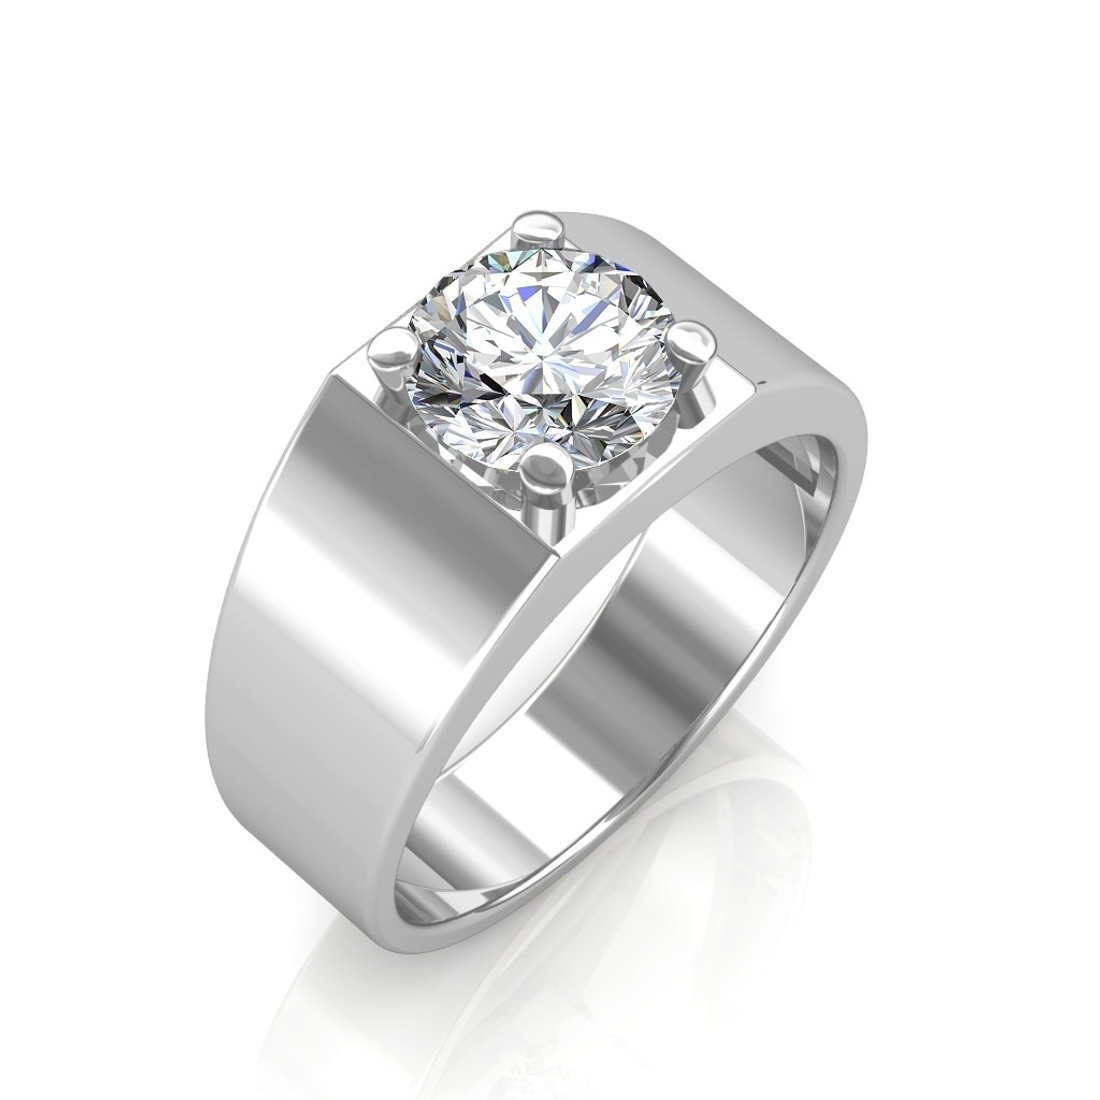 Sarvada Jewels' The Evergreen Solitaire Ring For Him - White - 0.20 carat